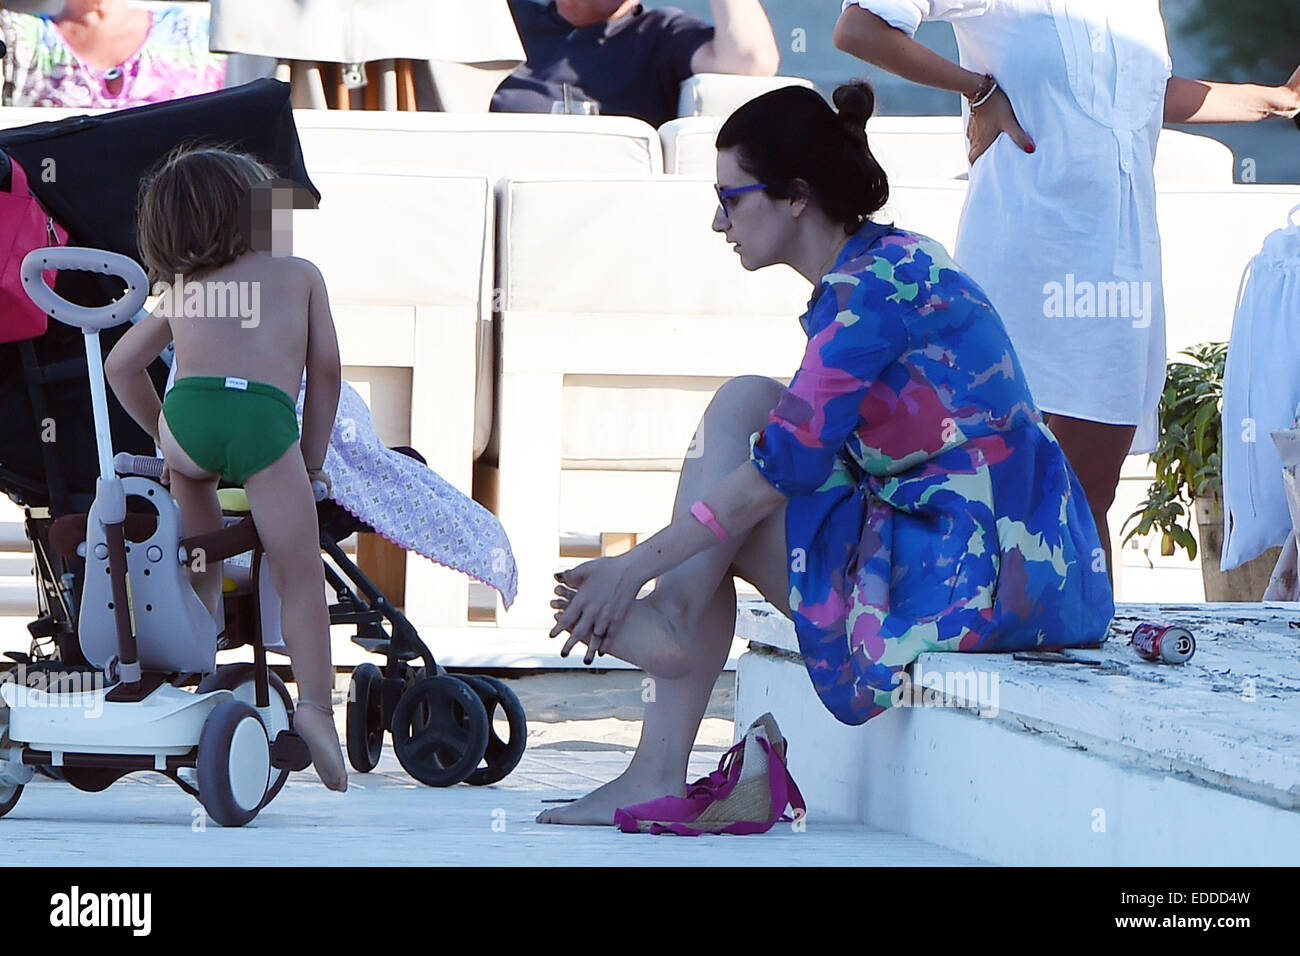 Italian pop singer and record producer Laura Pausini enjoys a day on the beach with her daughter Paola and family Stock Photo